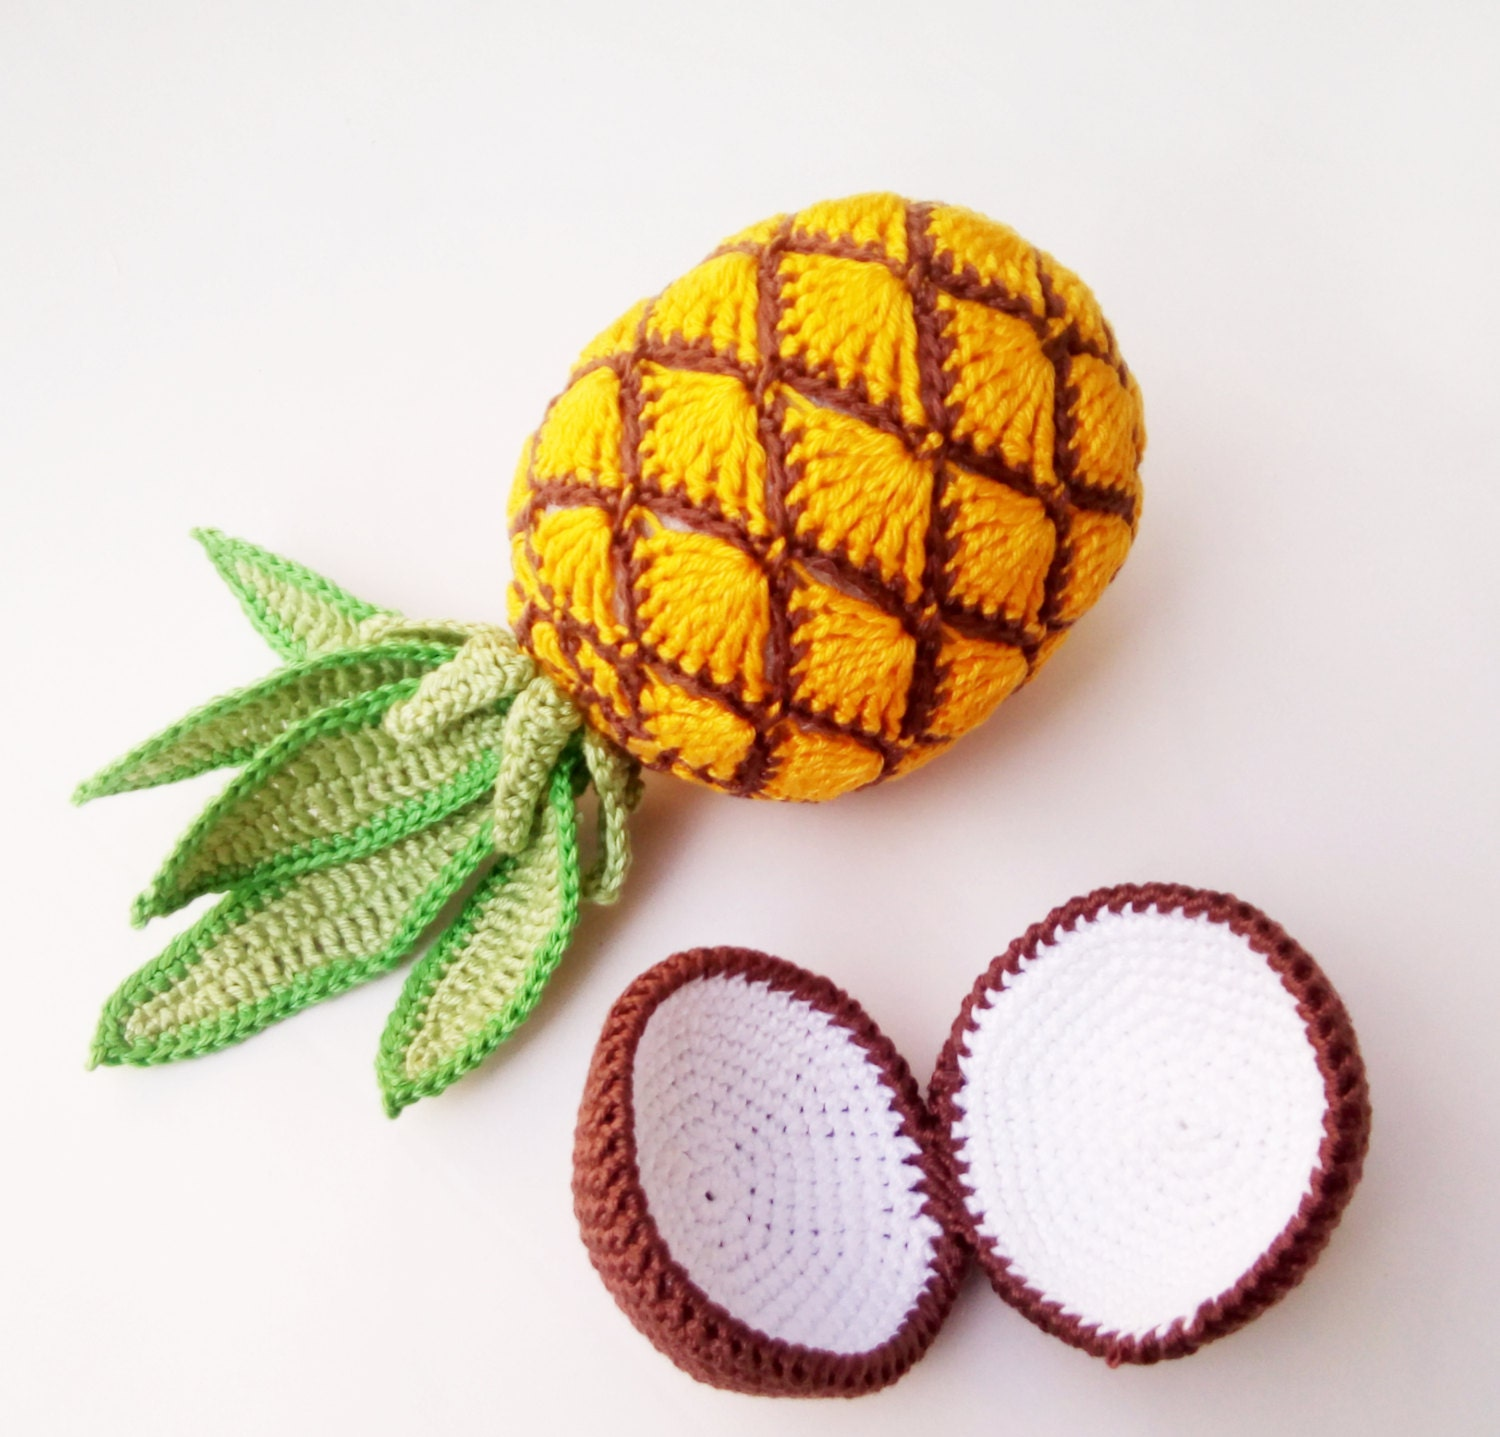 Save fruit doll - 1 Pc Crochet Pineapple Toy Pineapple Amigurumi Fruit Doll Pineapple Plushie Sensory Toy Interactive Children Games